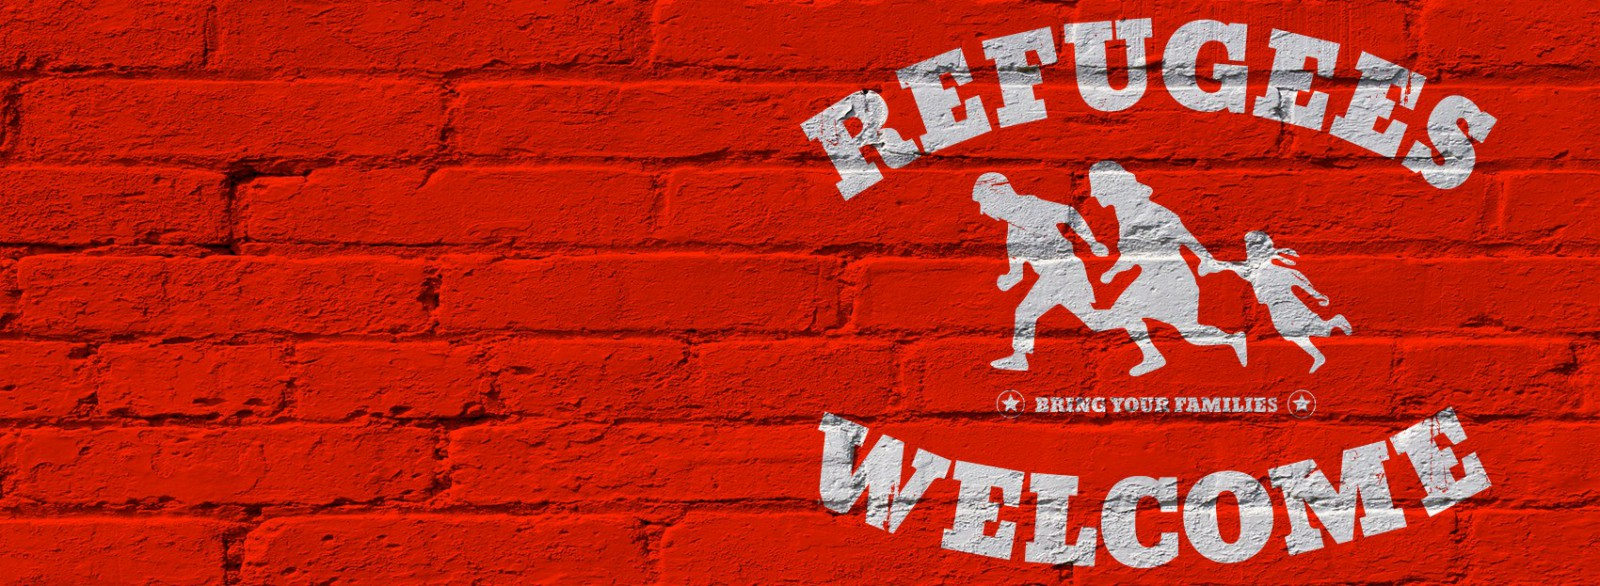 refugeeswelcome_red